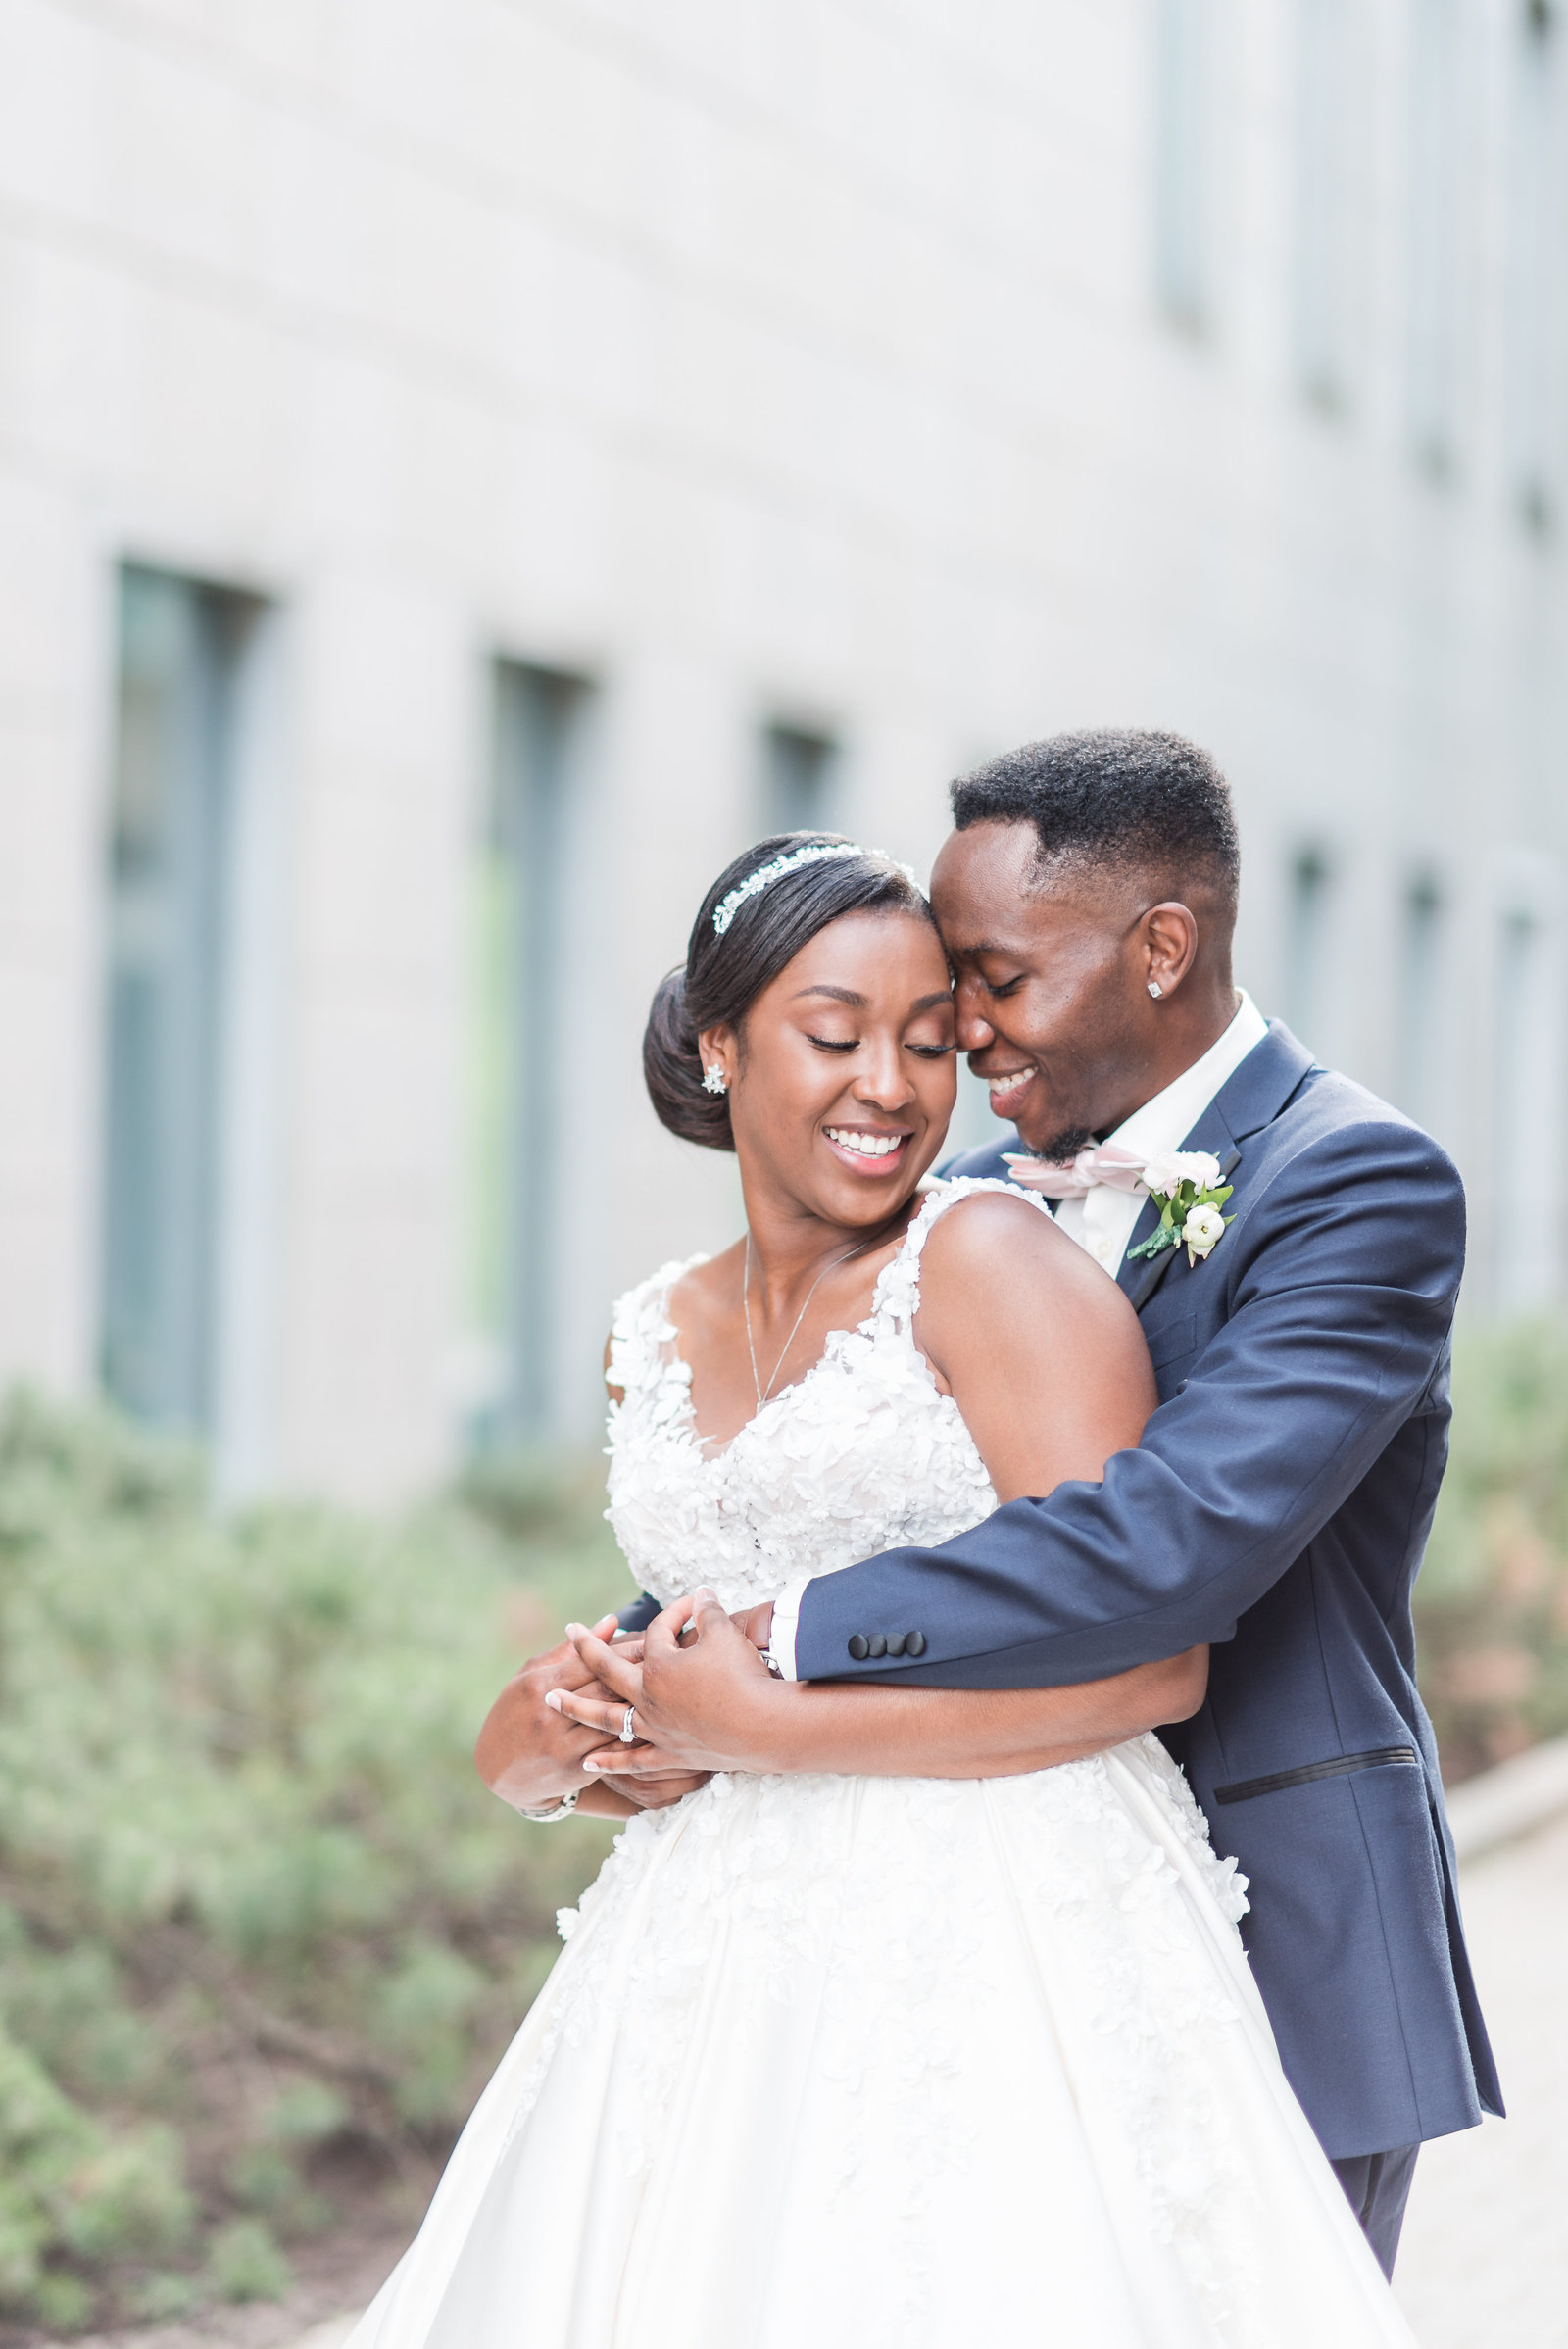 Samantha-Akeem-Wedding-165840